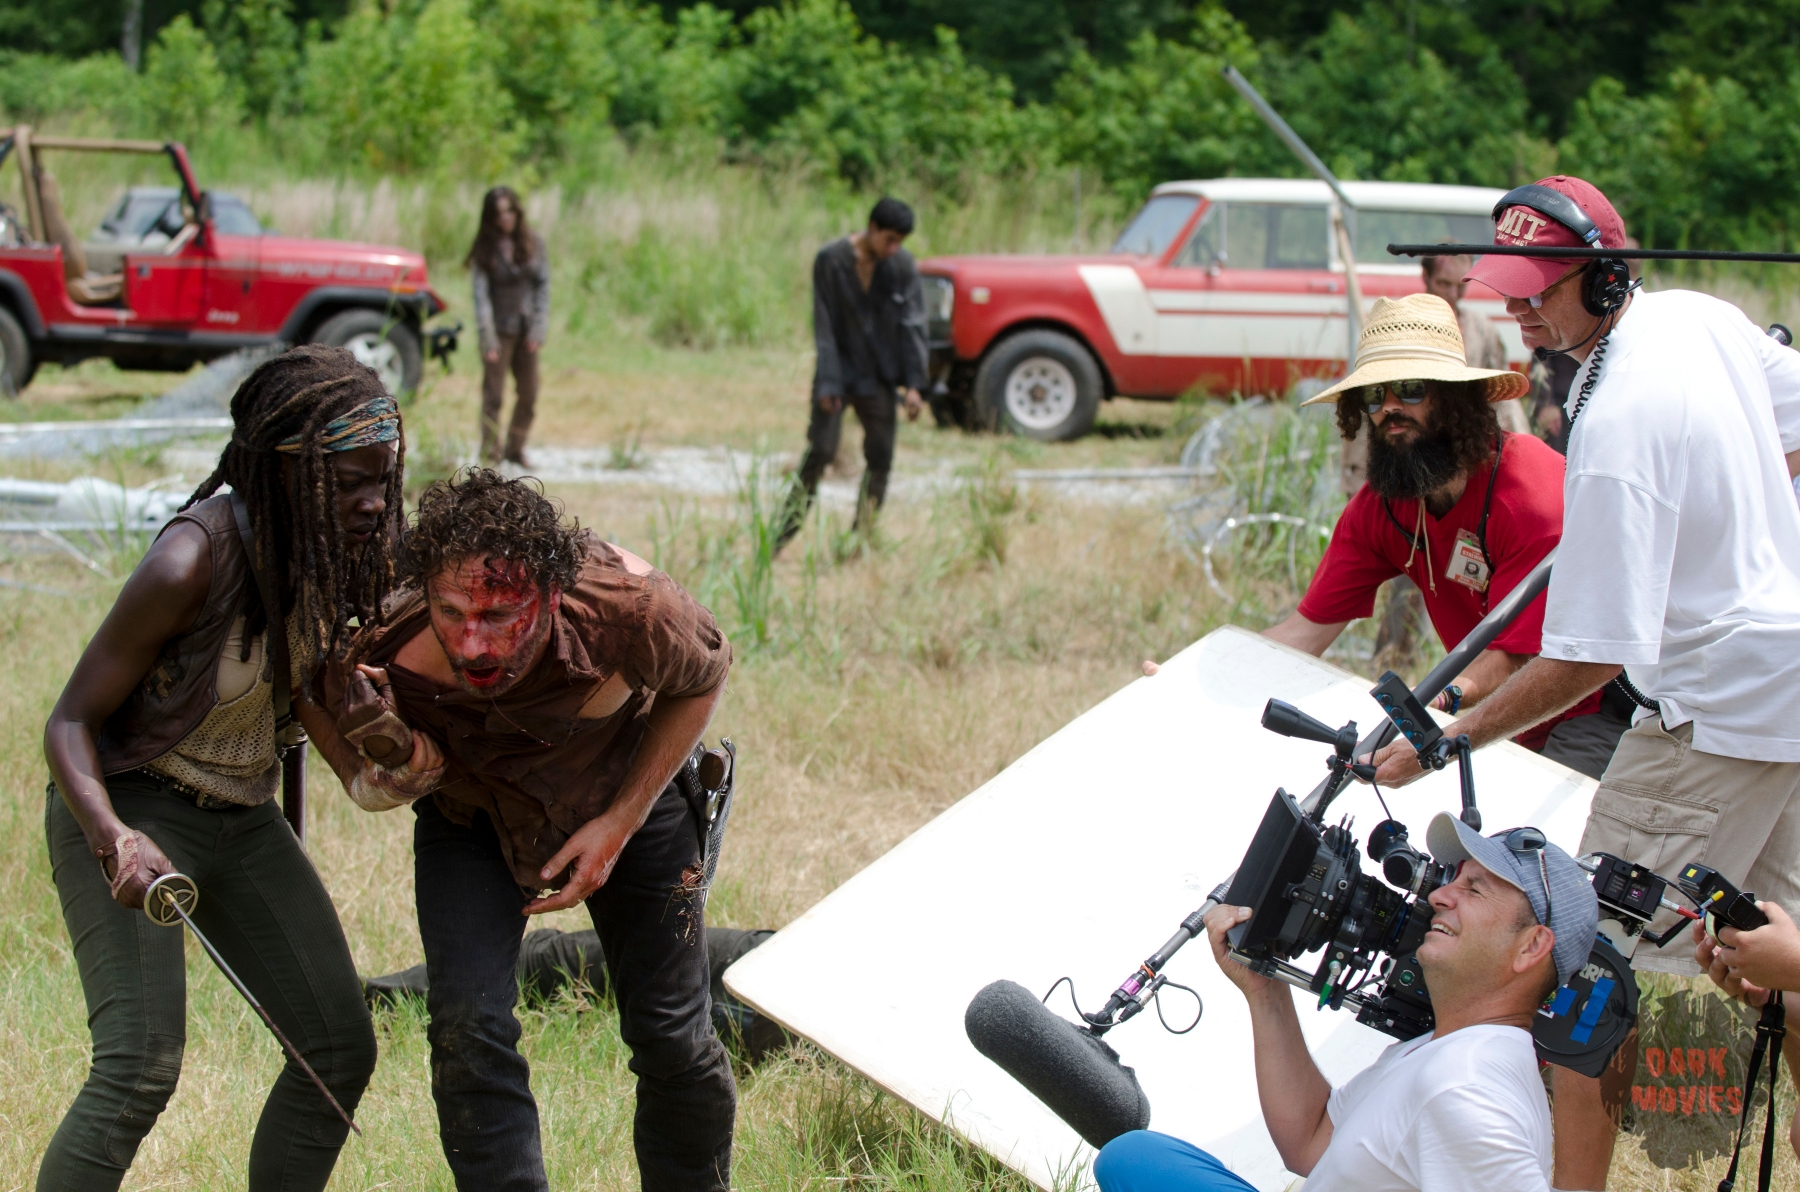 Michonne (Danai Gurira) and Rick Grimes (Andrew Lincoln) - The Walking Dead _ Season 4, Episode 8 _ BTS - Photo Credit: Gene Page/AMC